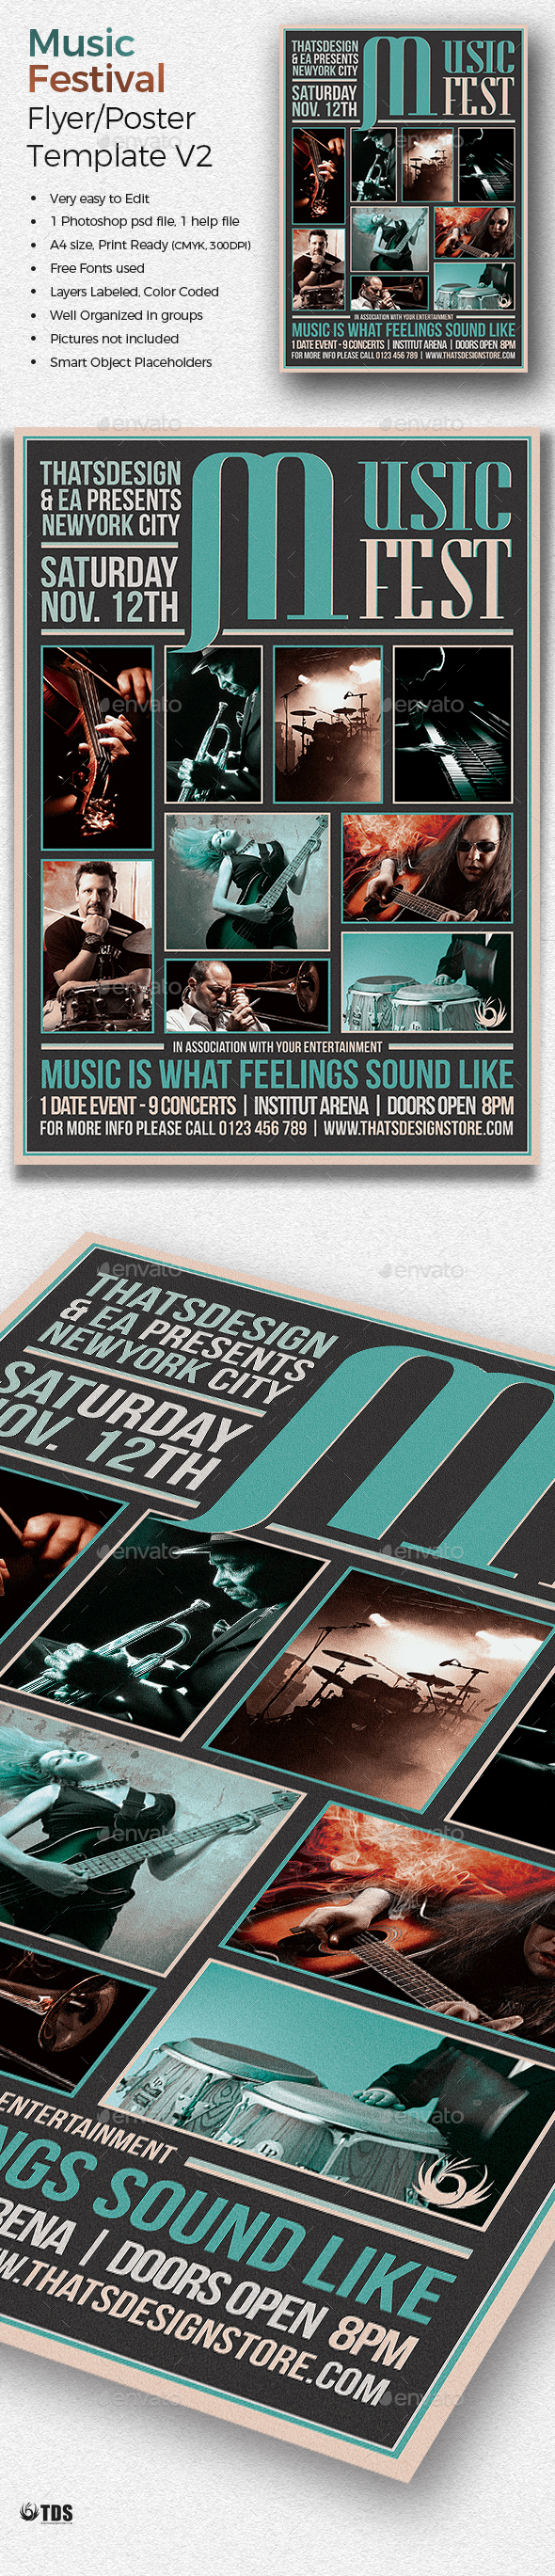 Music Festival Flyer Template V2 - Concerts Events